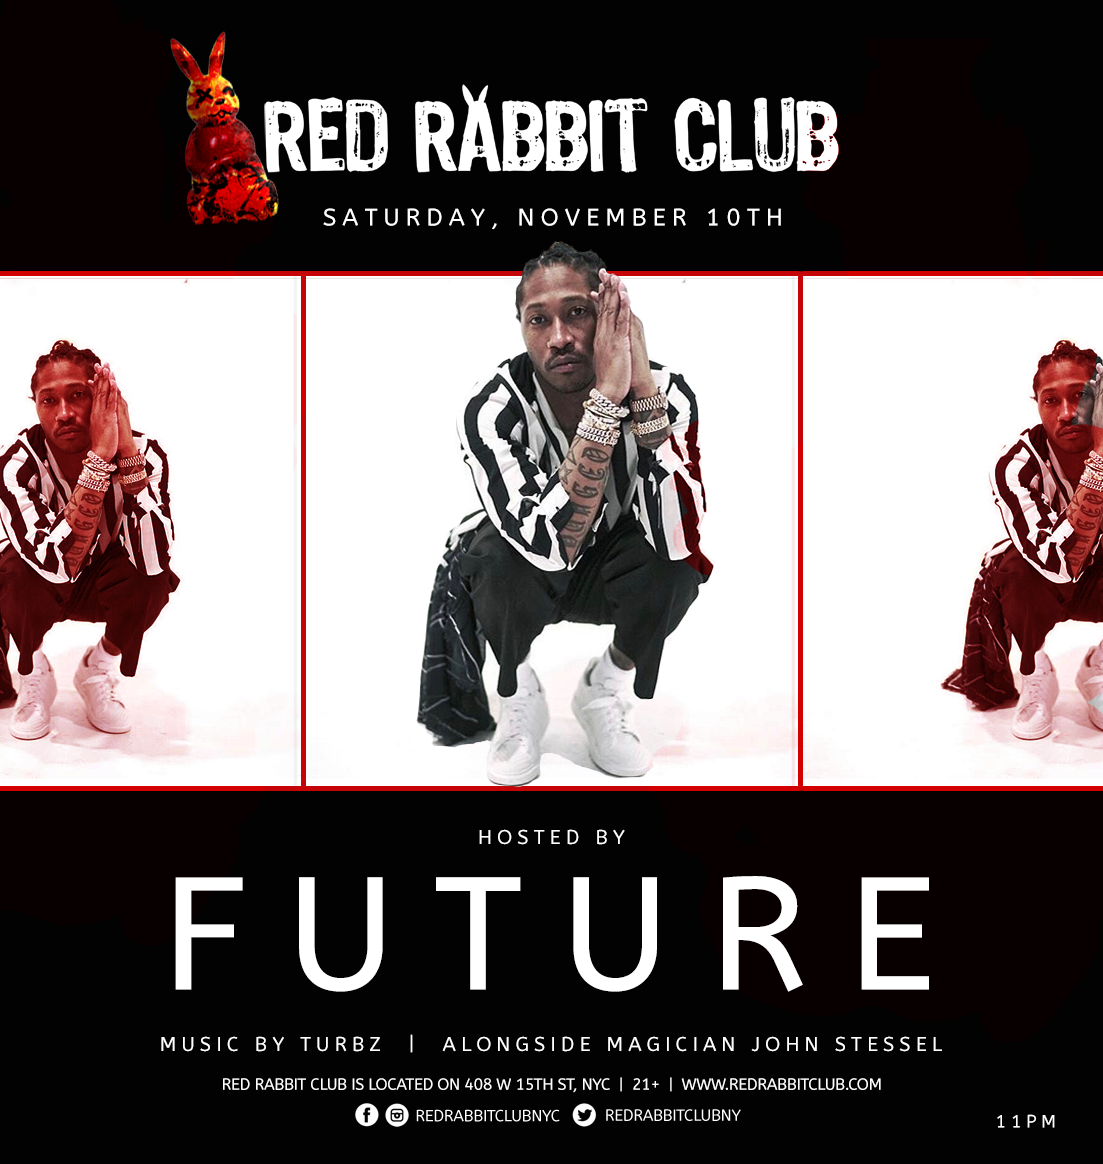 Future @ Red Rabbit Club - Nov 10